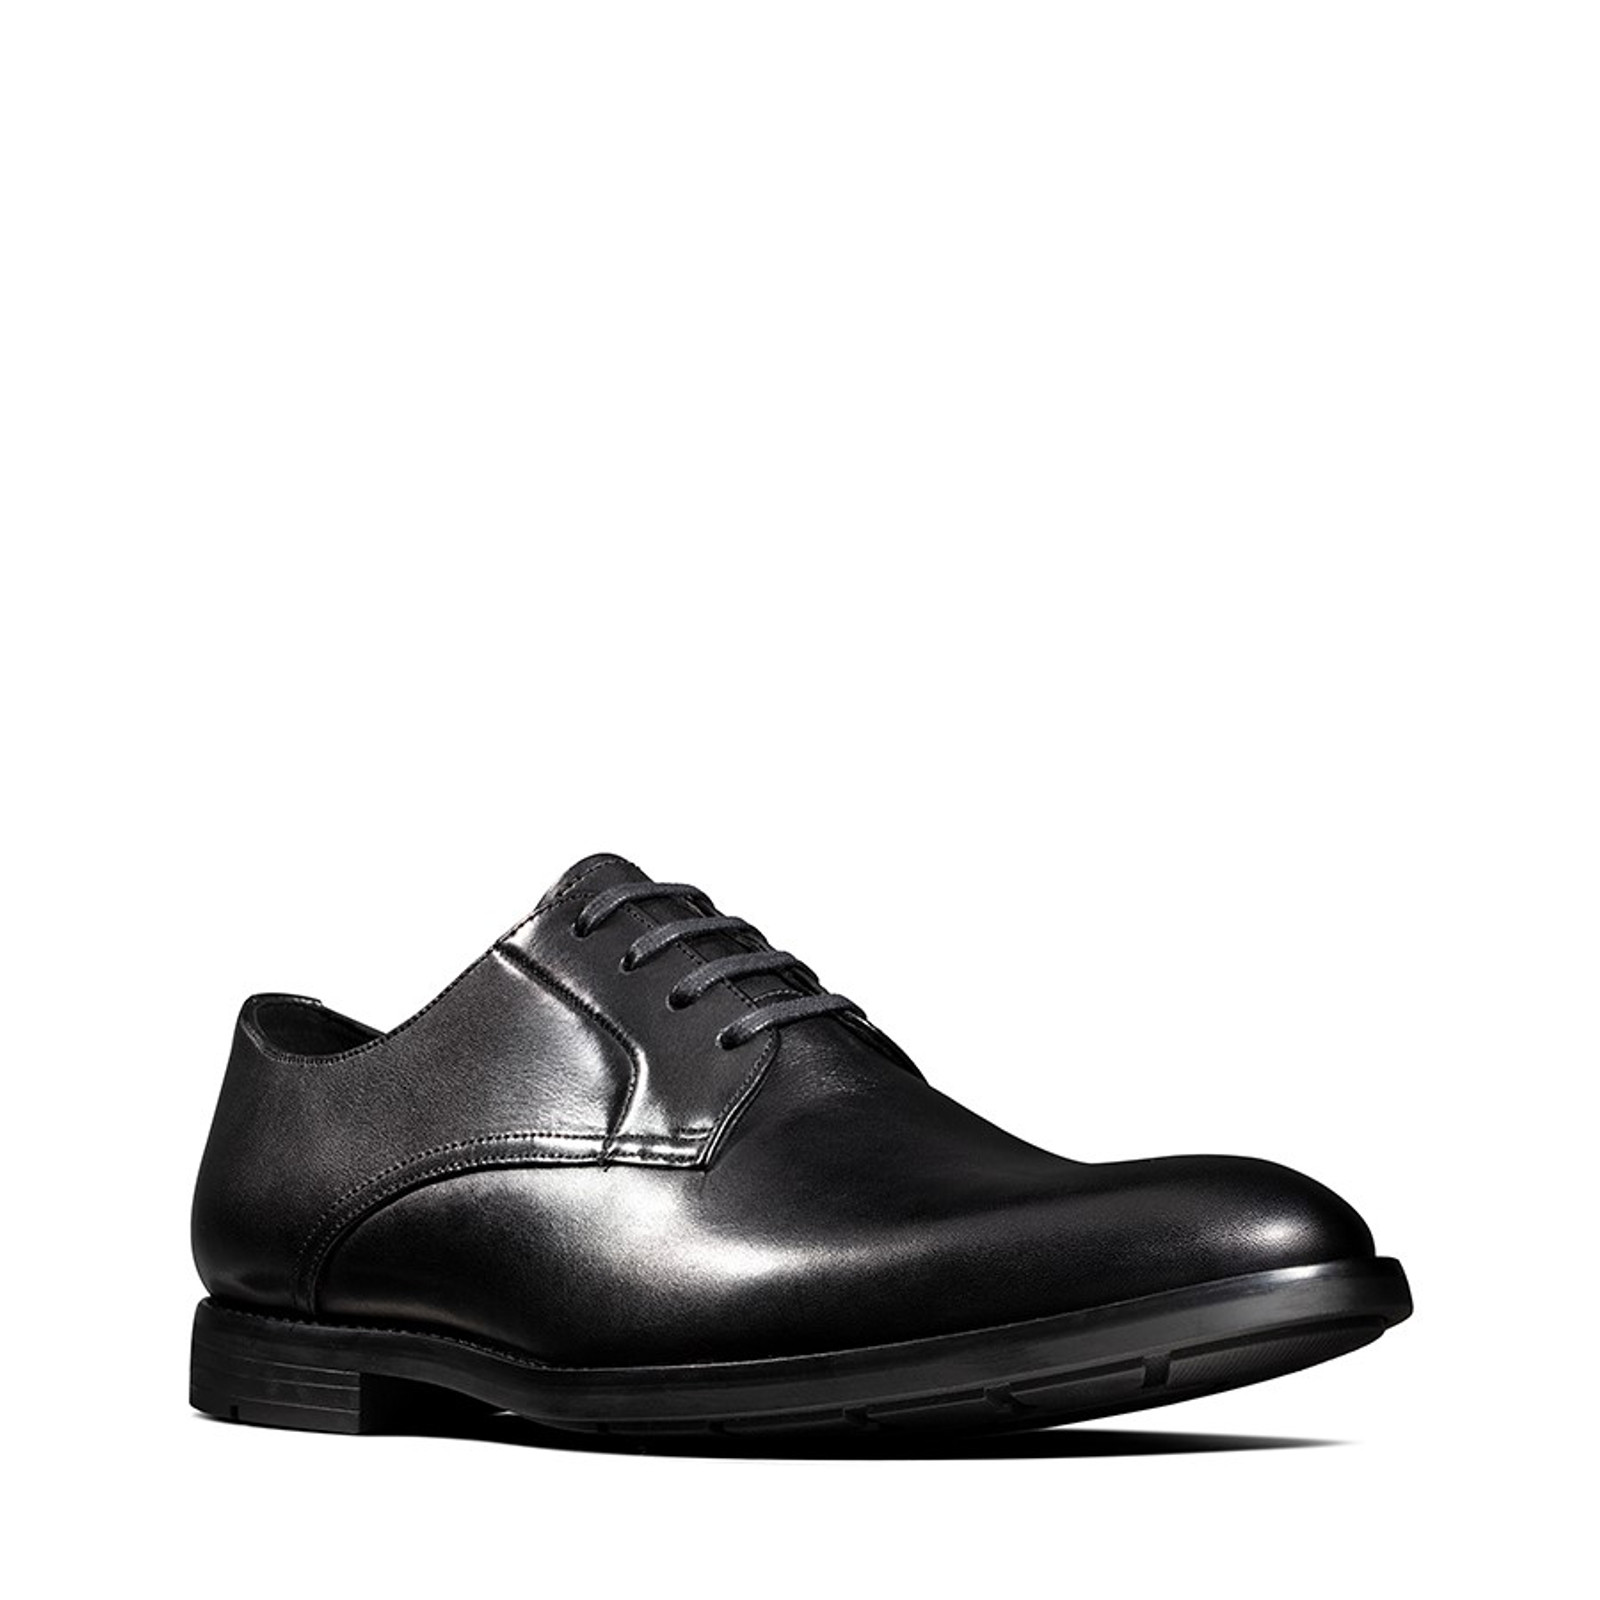 Clarks Mens RONNIE WALK Black Leather